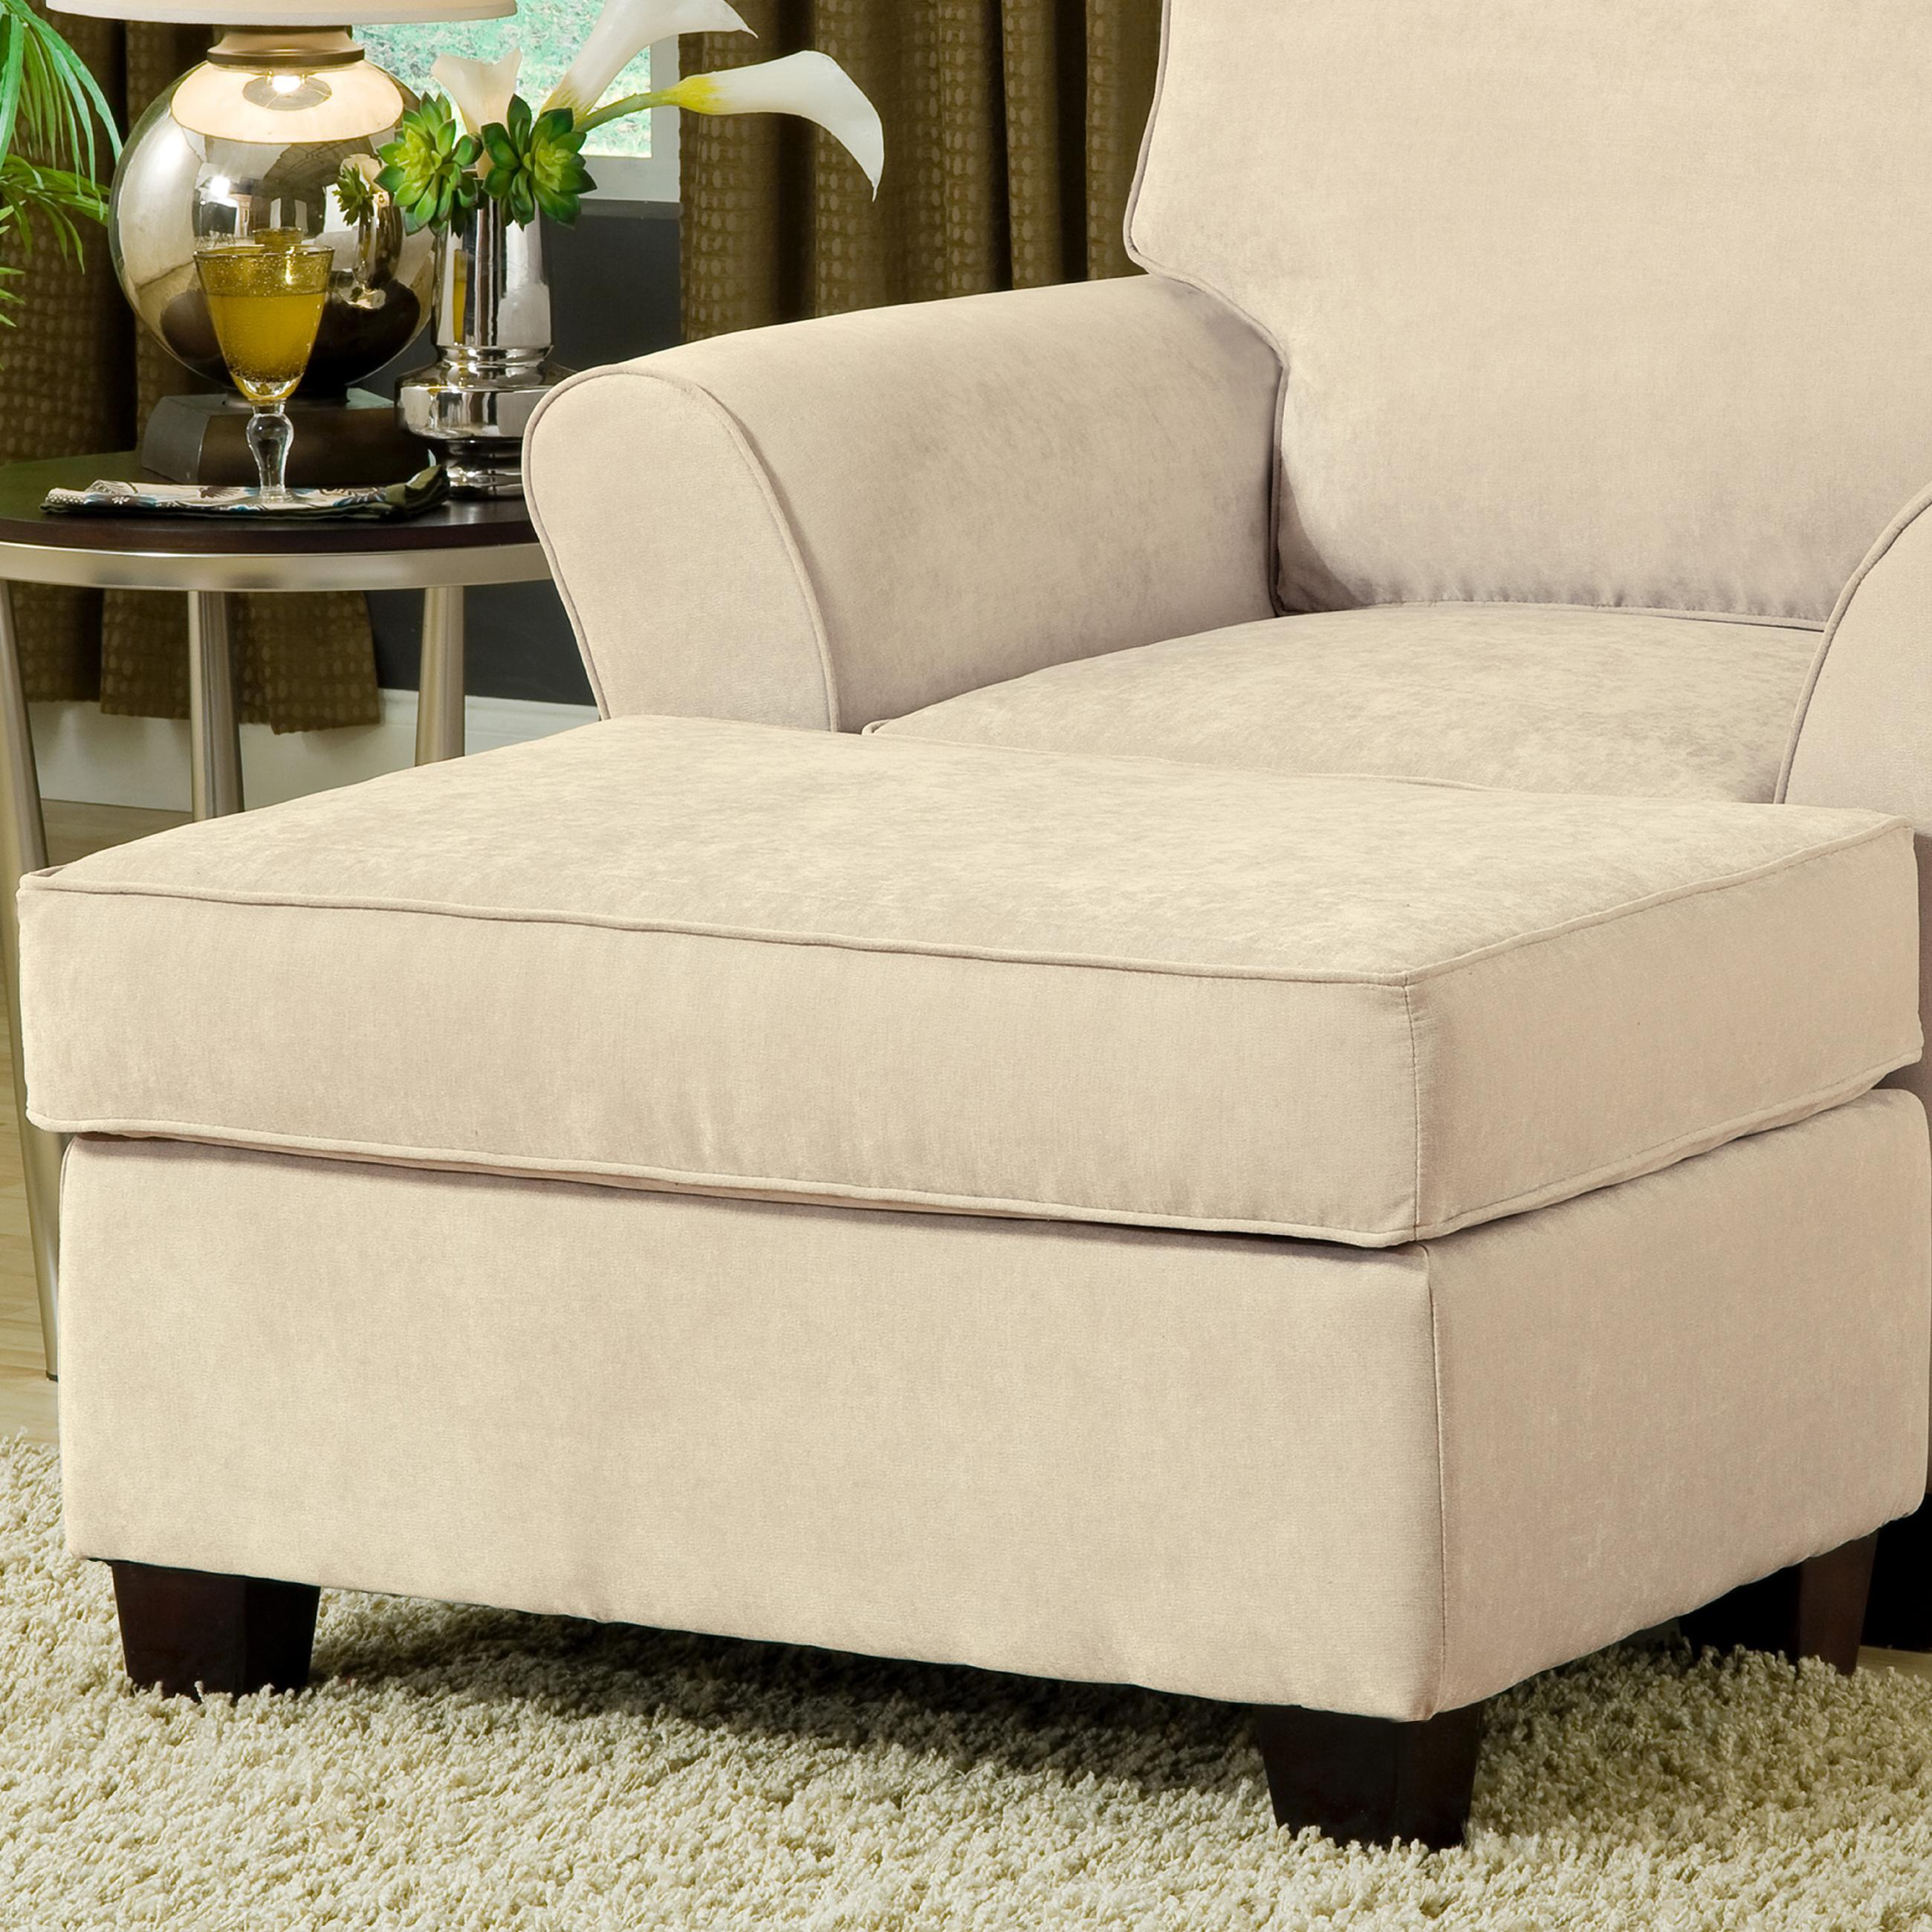 Belfort Essentials Addison Upholstered Ottoman - Item Number: 8400-OO